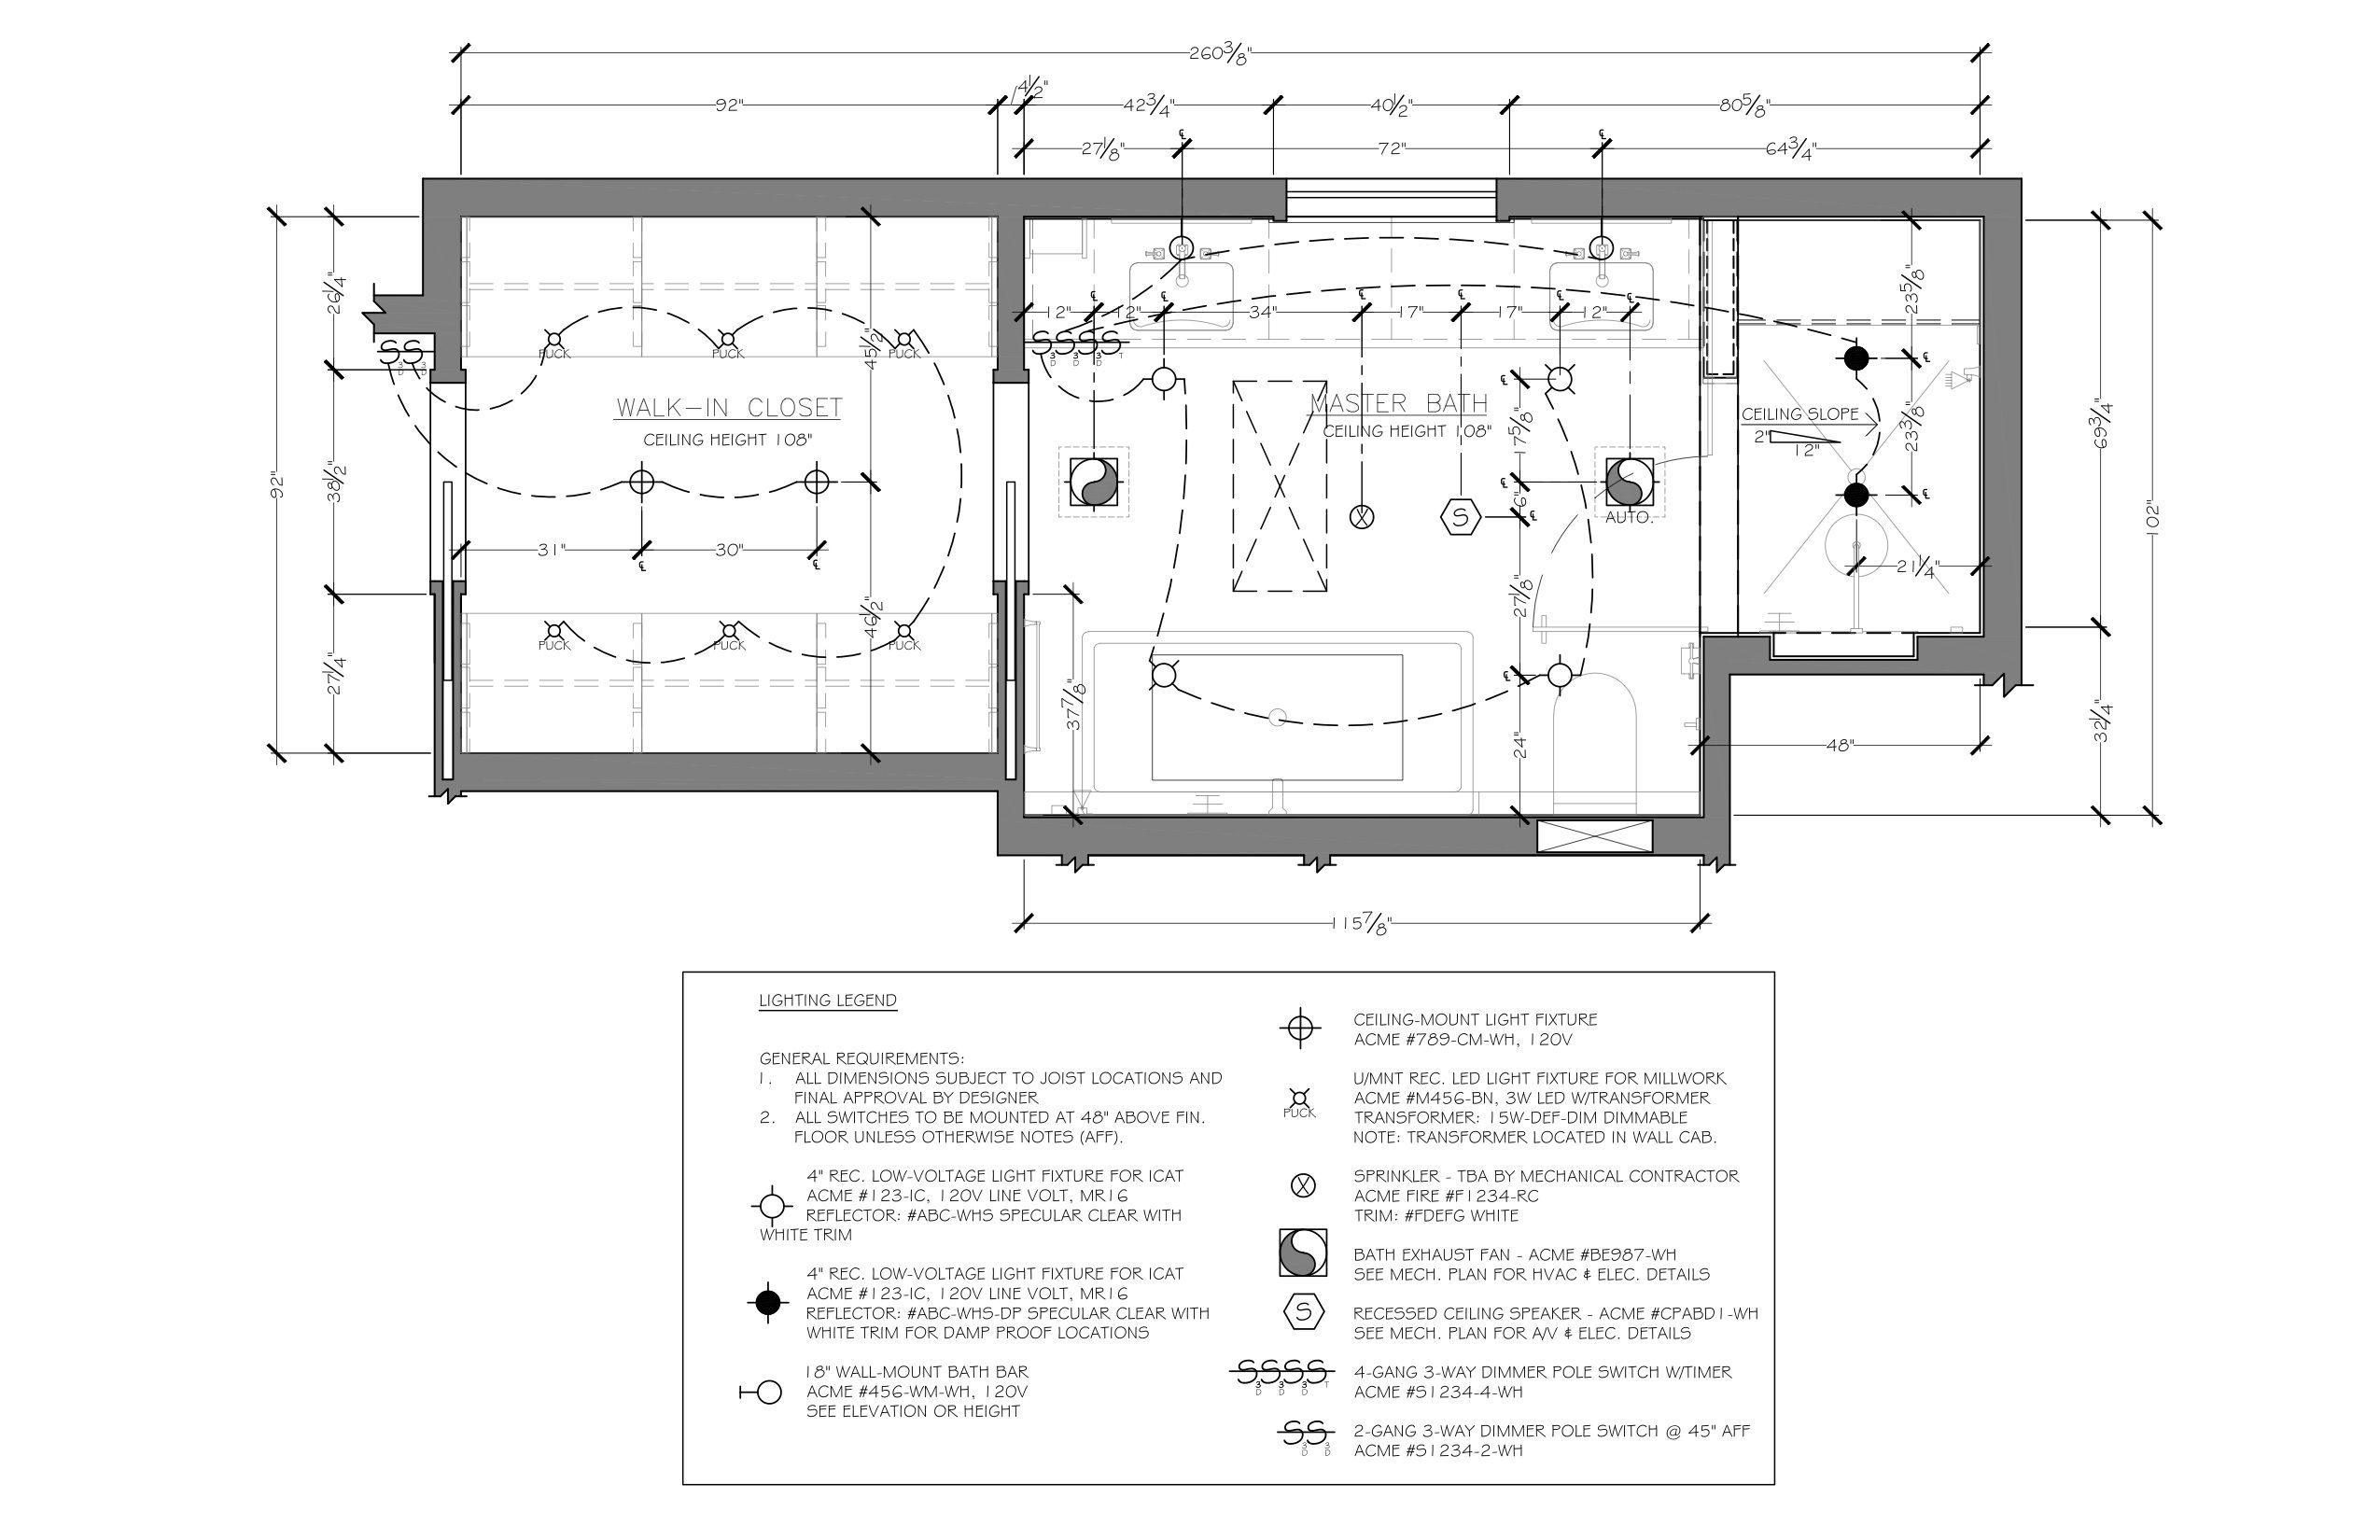 bathroom reflected ceiling plan example c 2013 corey klassen ckd used under permission from the national kitchen bath association [ 2550 x 1650 Pixel ]